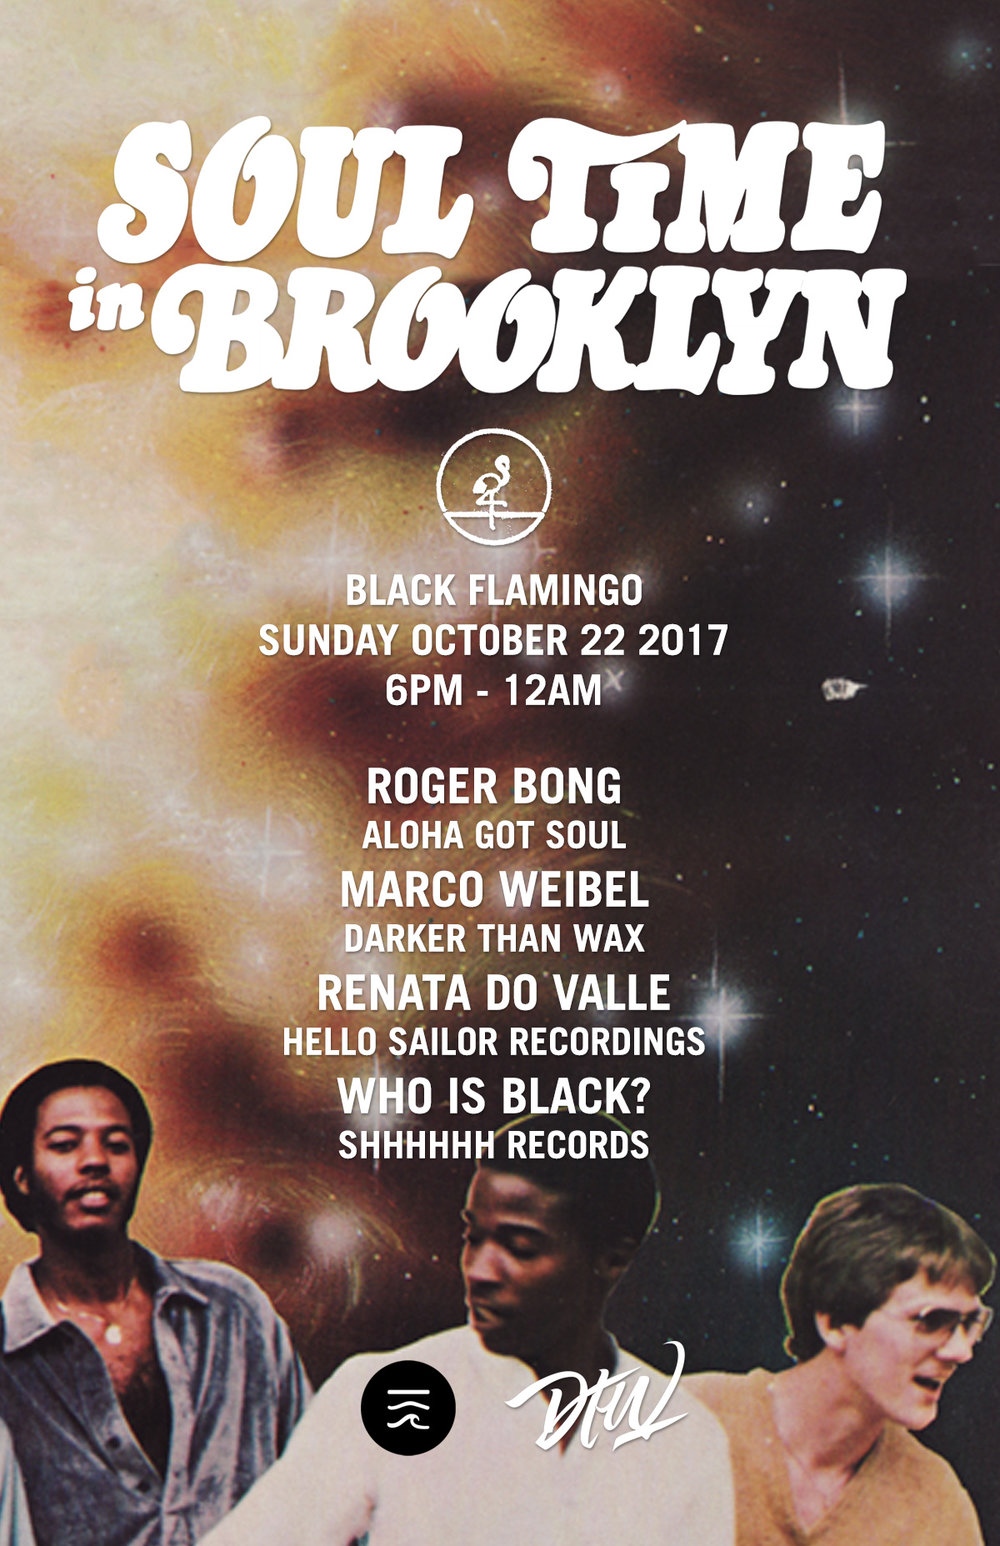 Soul-Time-Brooklyn-102017-v3.jpg